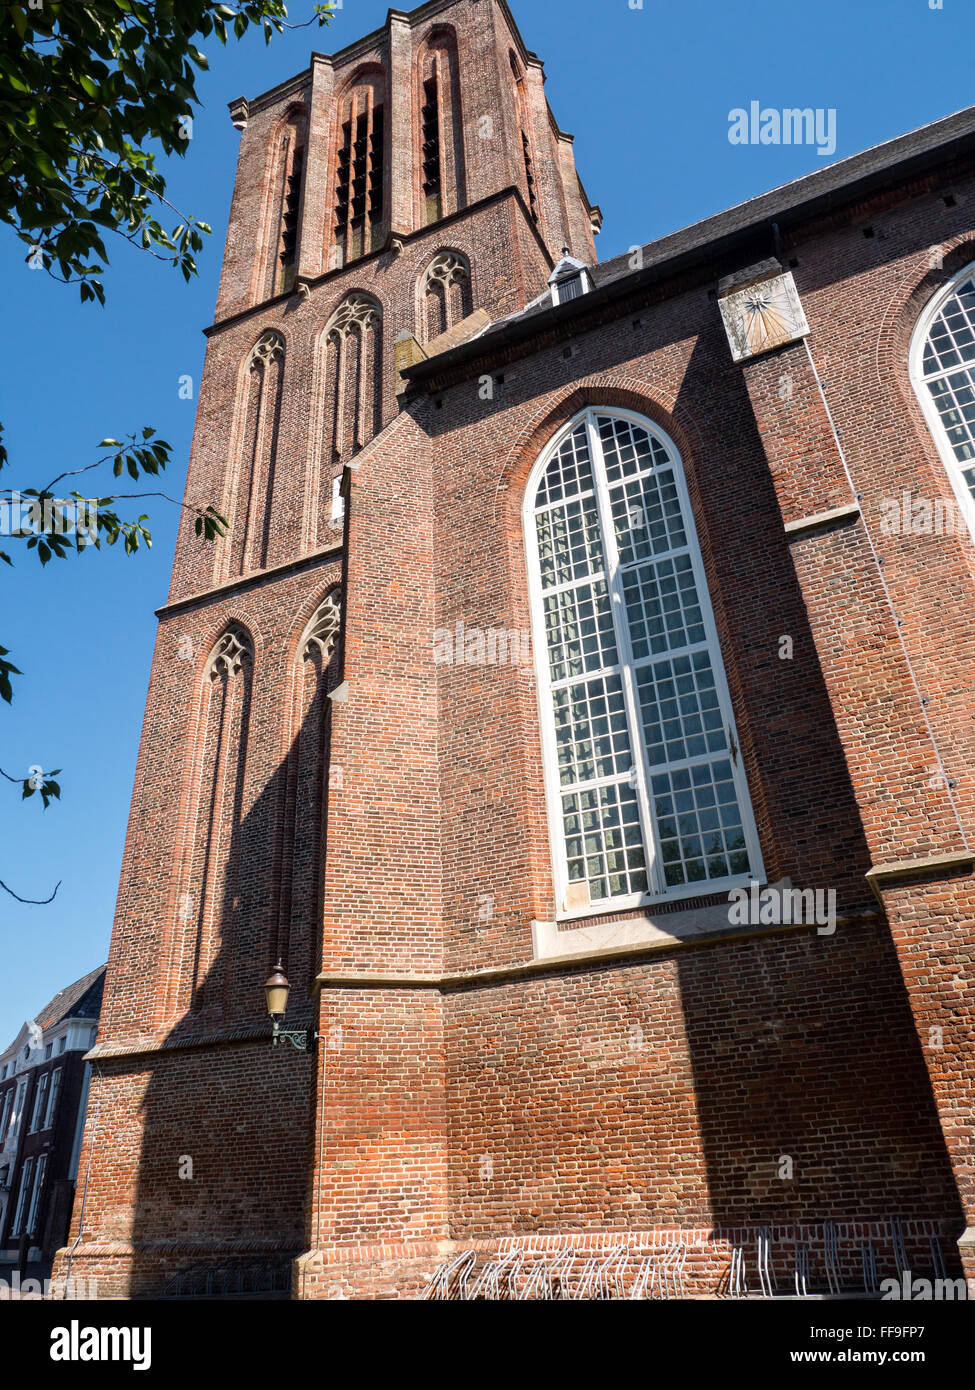 Historic church in the town of Elburg - Stock Image